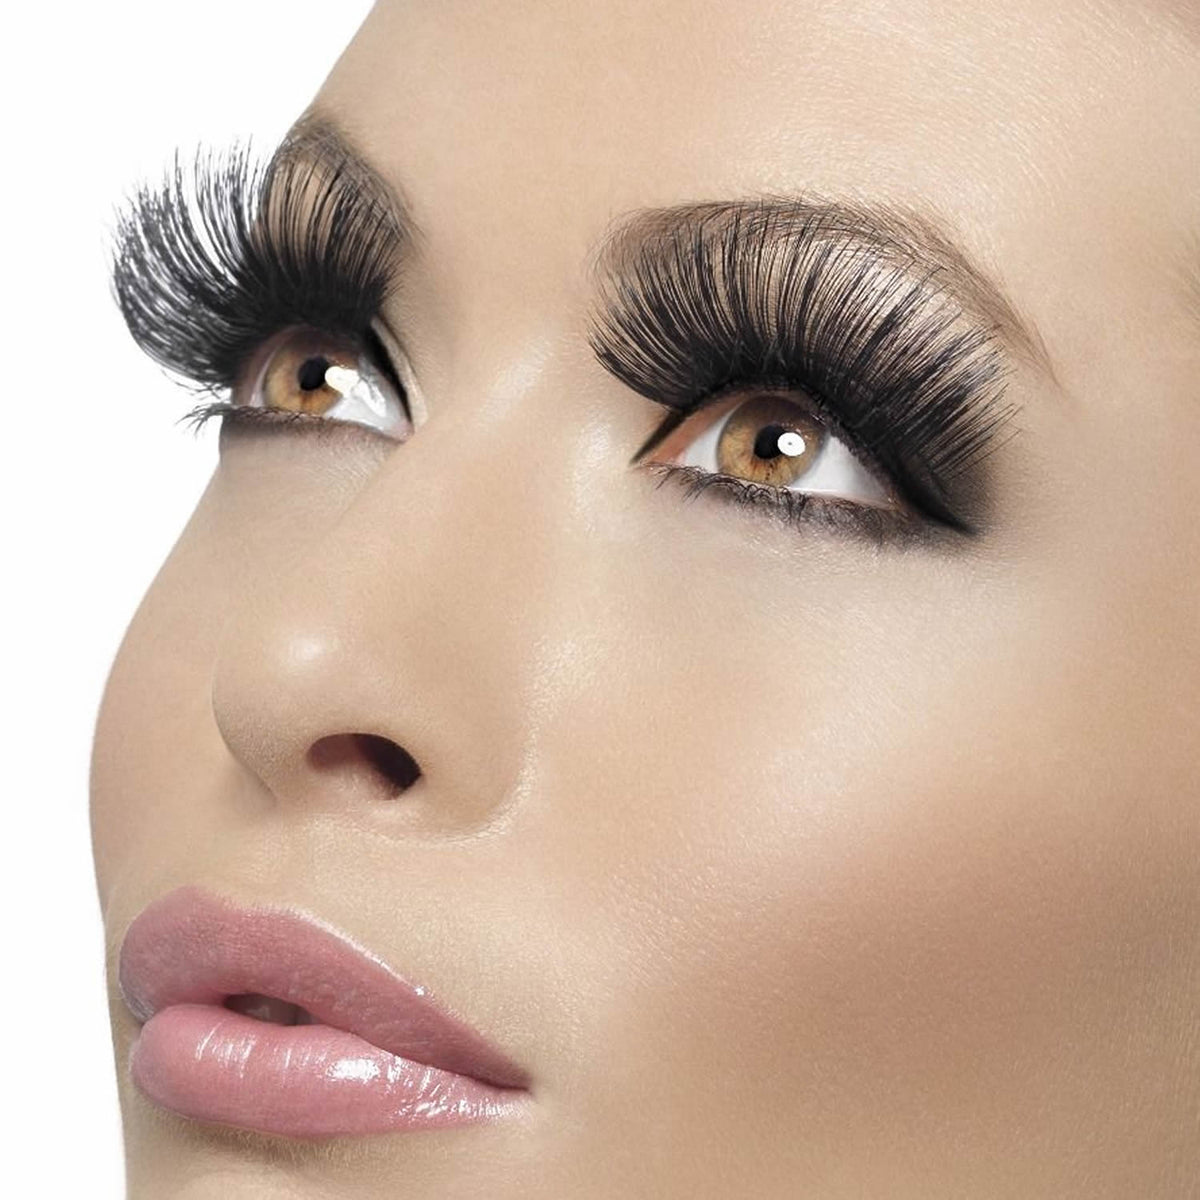 Fever False Eyelashes - 60s Style Long Black - Red Carpet FX - Professional Makeup